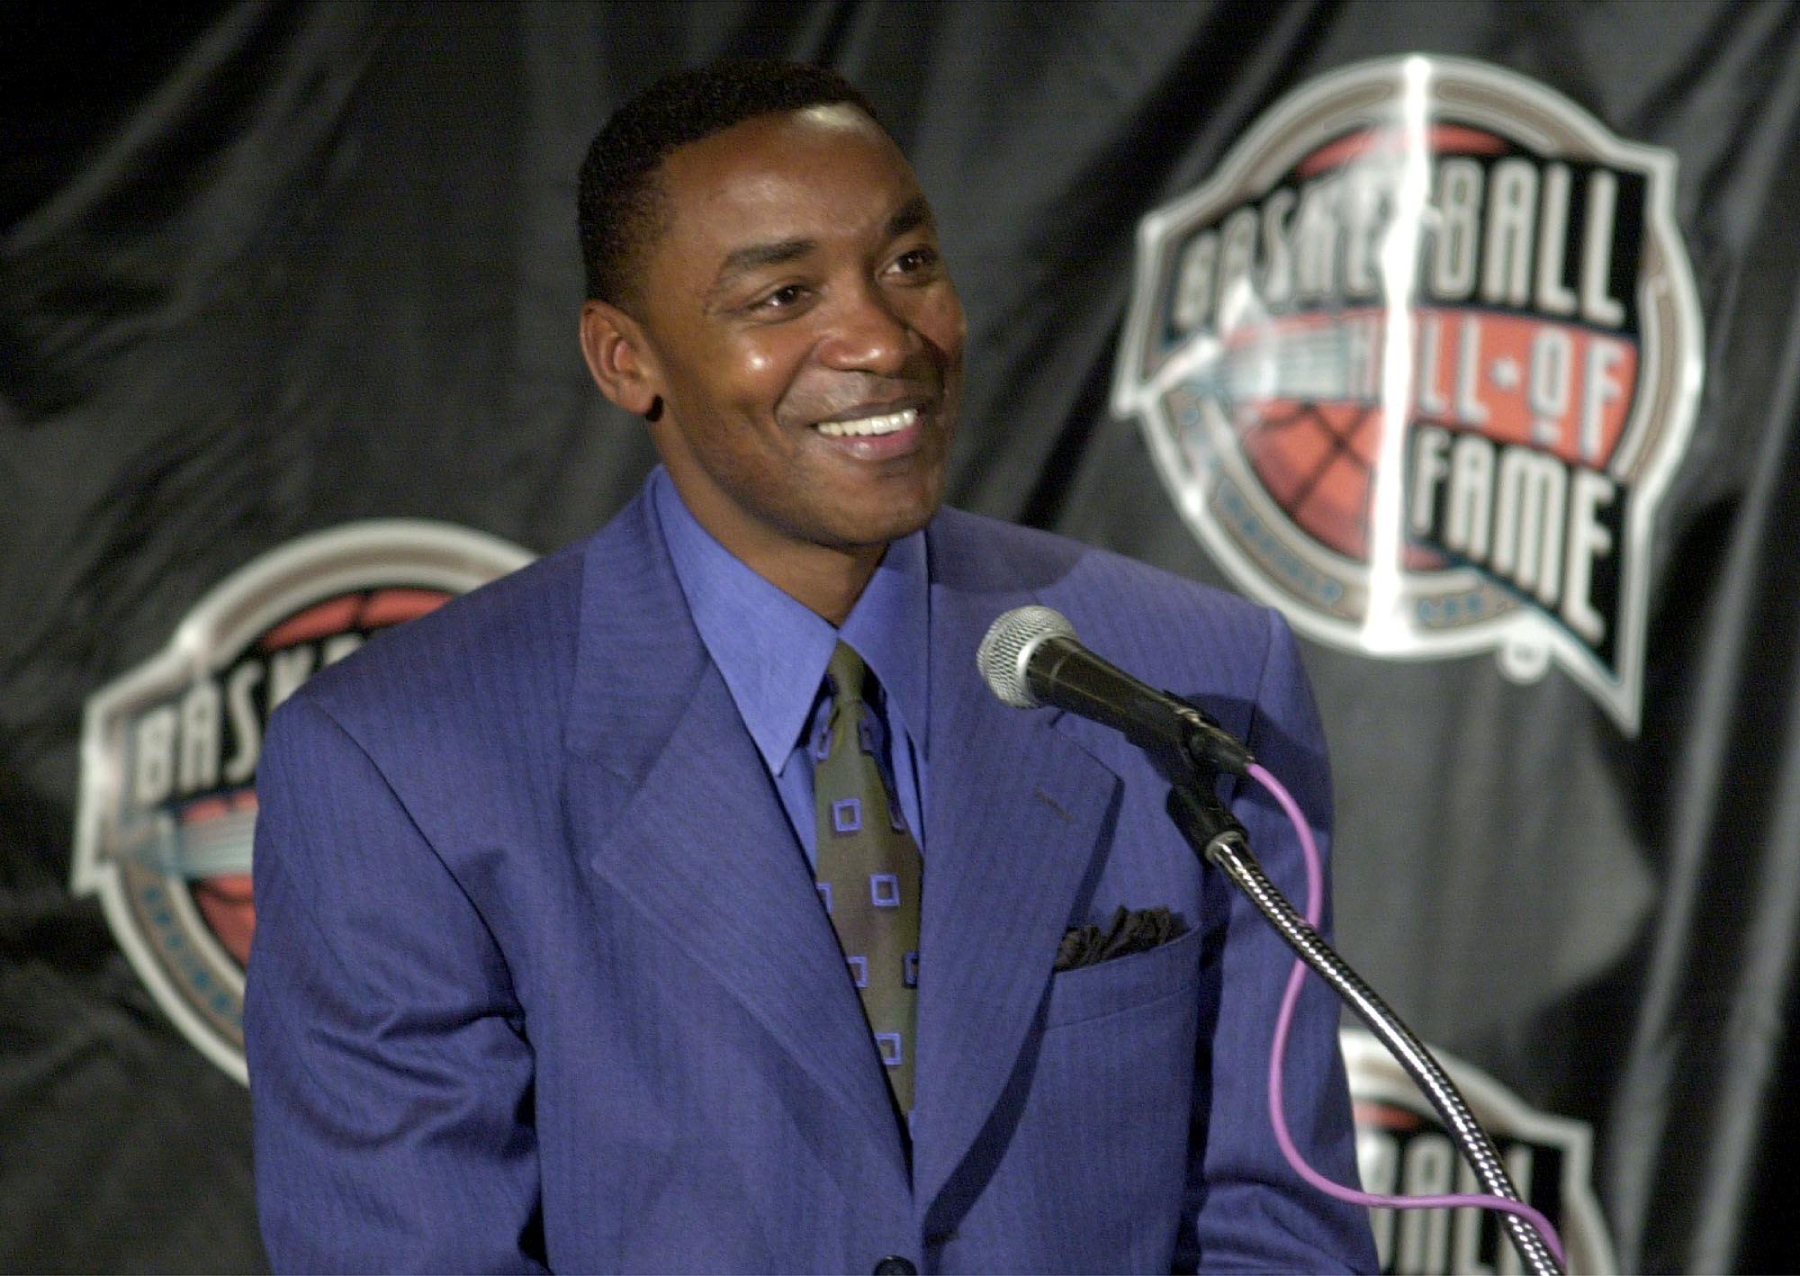 Isiah Thomas and Michael Jordan have a rivalry that stretches back decades. Thomas just added more to it as he just sent him a strong message.